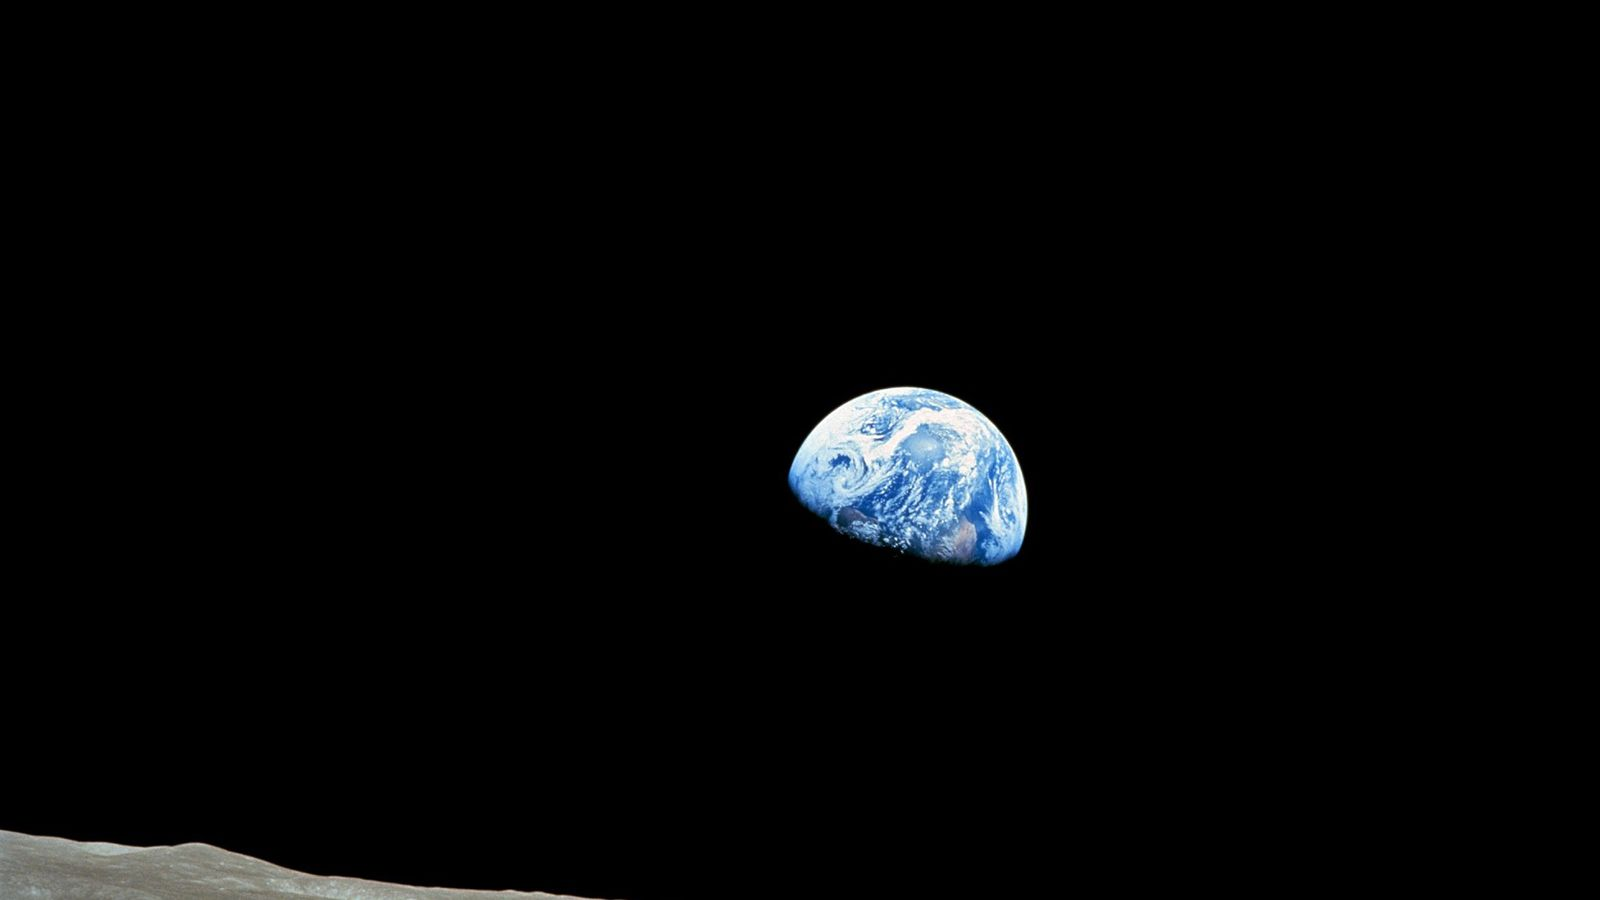 Apollo 8, the first mission to carry humans to the moon, entered lunar orbit on December ...